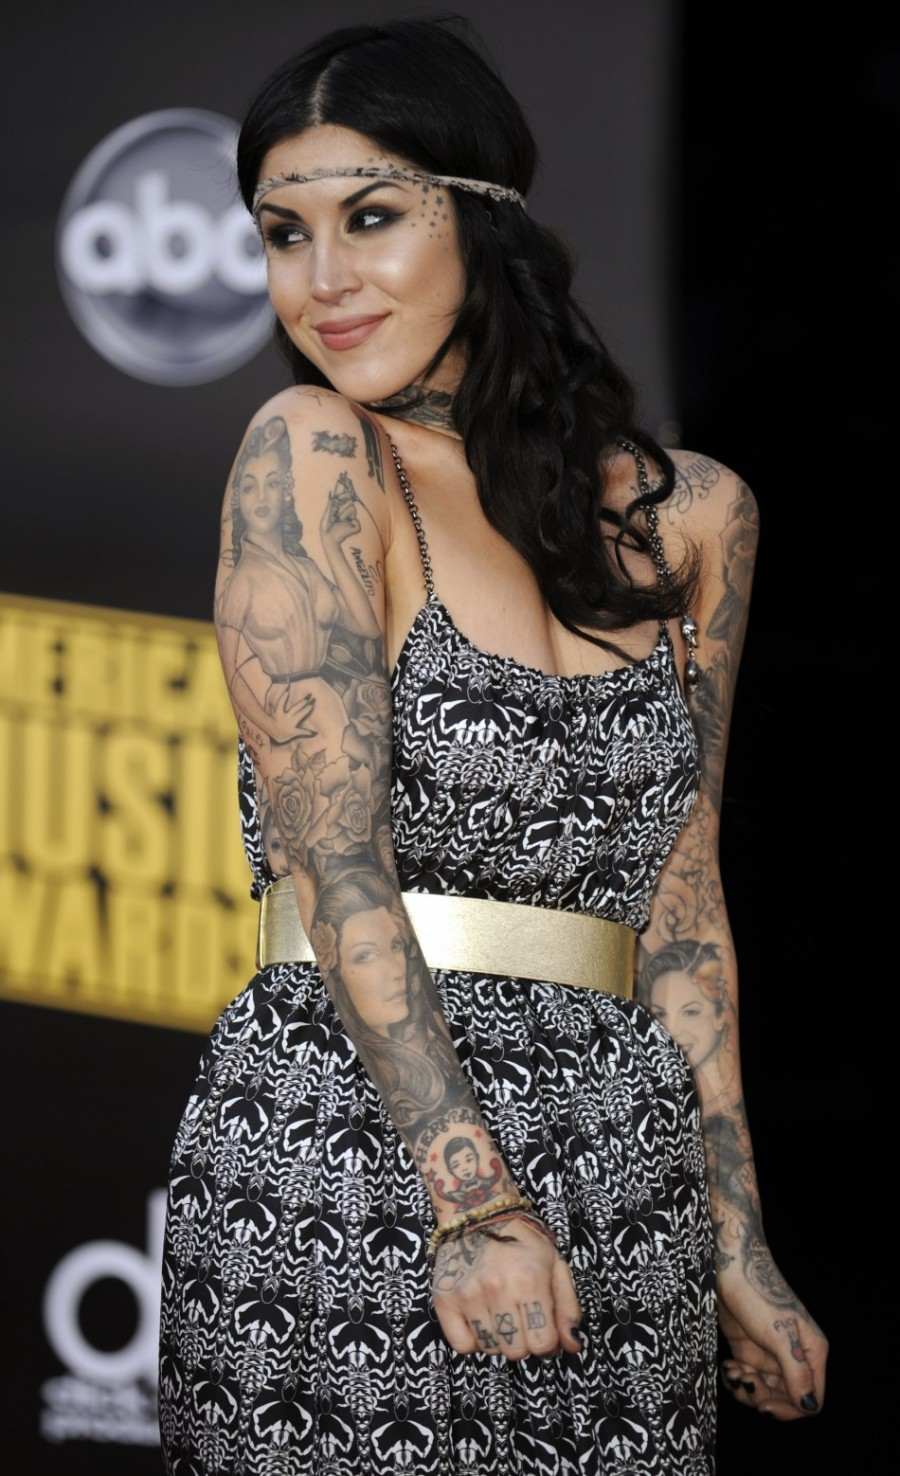 Kat Von D's High Voltage Tattoo